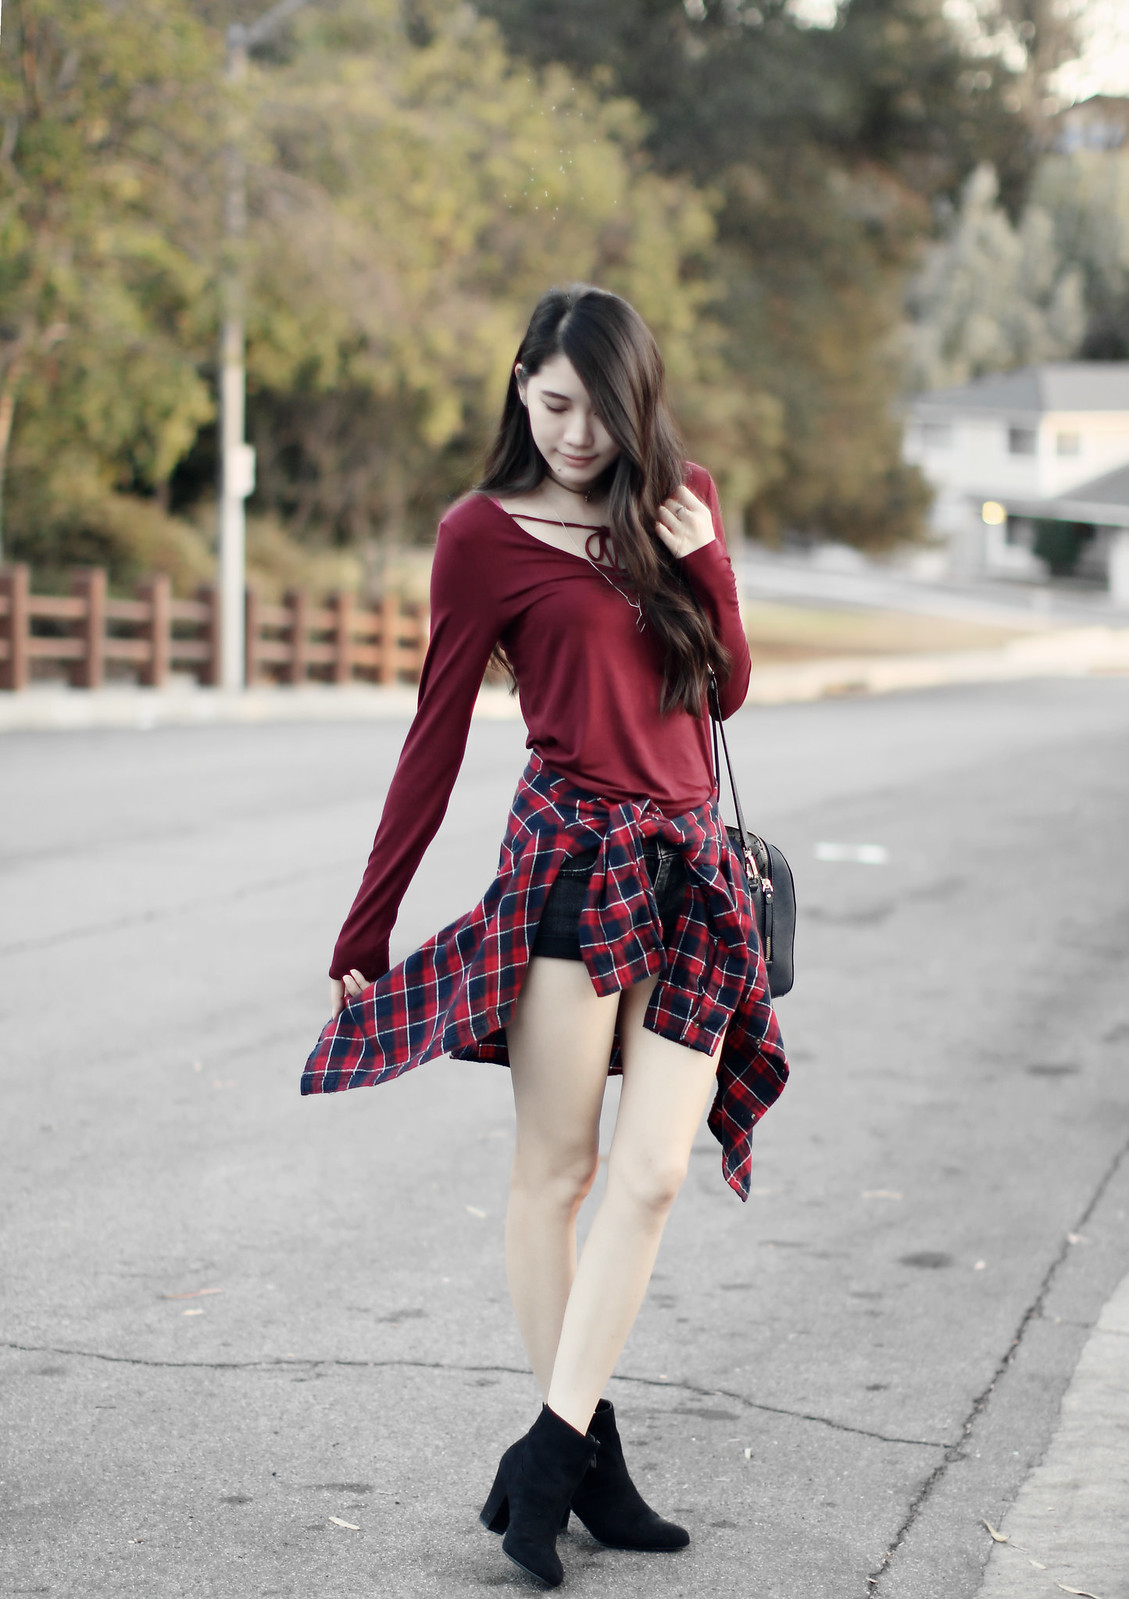 1128-fall-ootd-fashion-style-hollister-red-bowtie-autumn2016